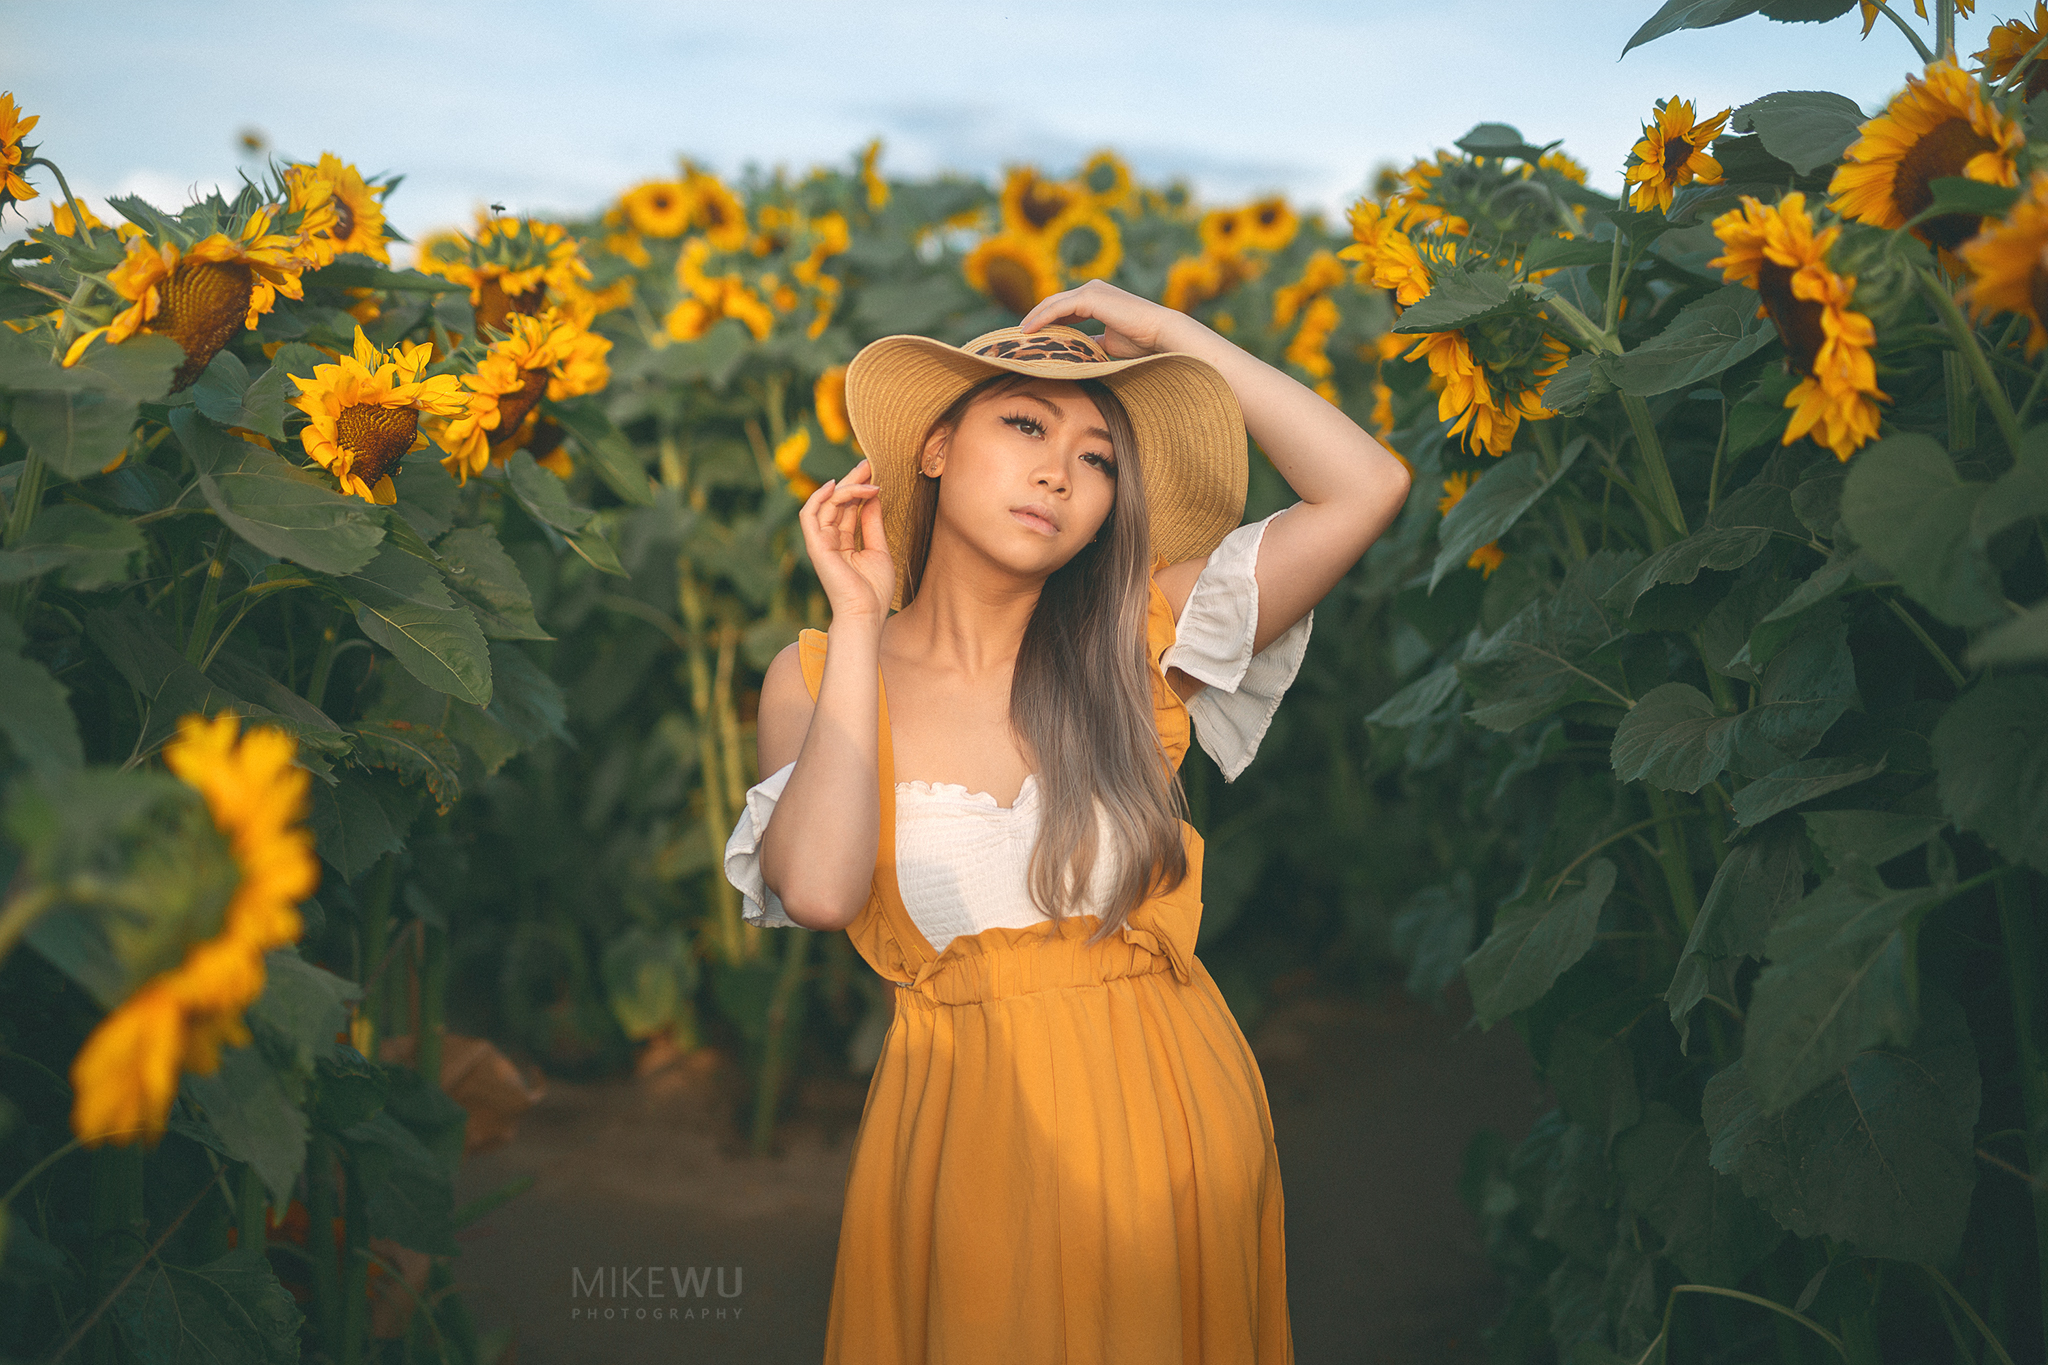 vancouver portrait photographer mike wu girl sunflowers field fine art photography golden hour beauty hat mustard yellow dress field outdoors summer autumn chiliwack abbotsford sunflower festival unique beauty chinese